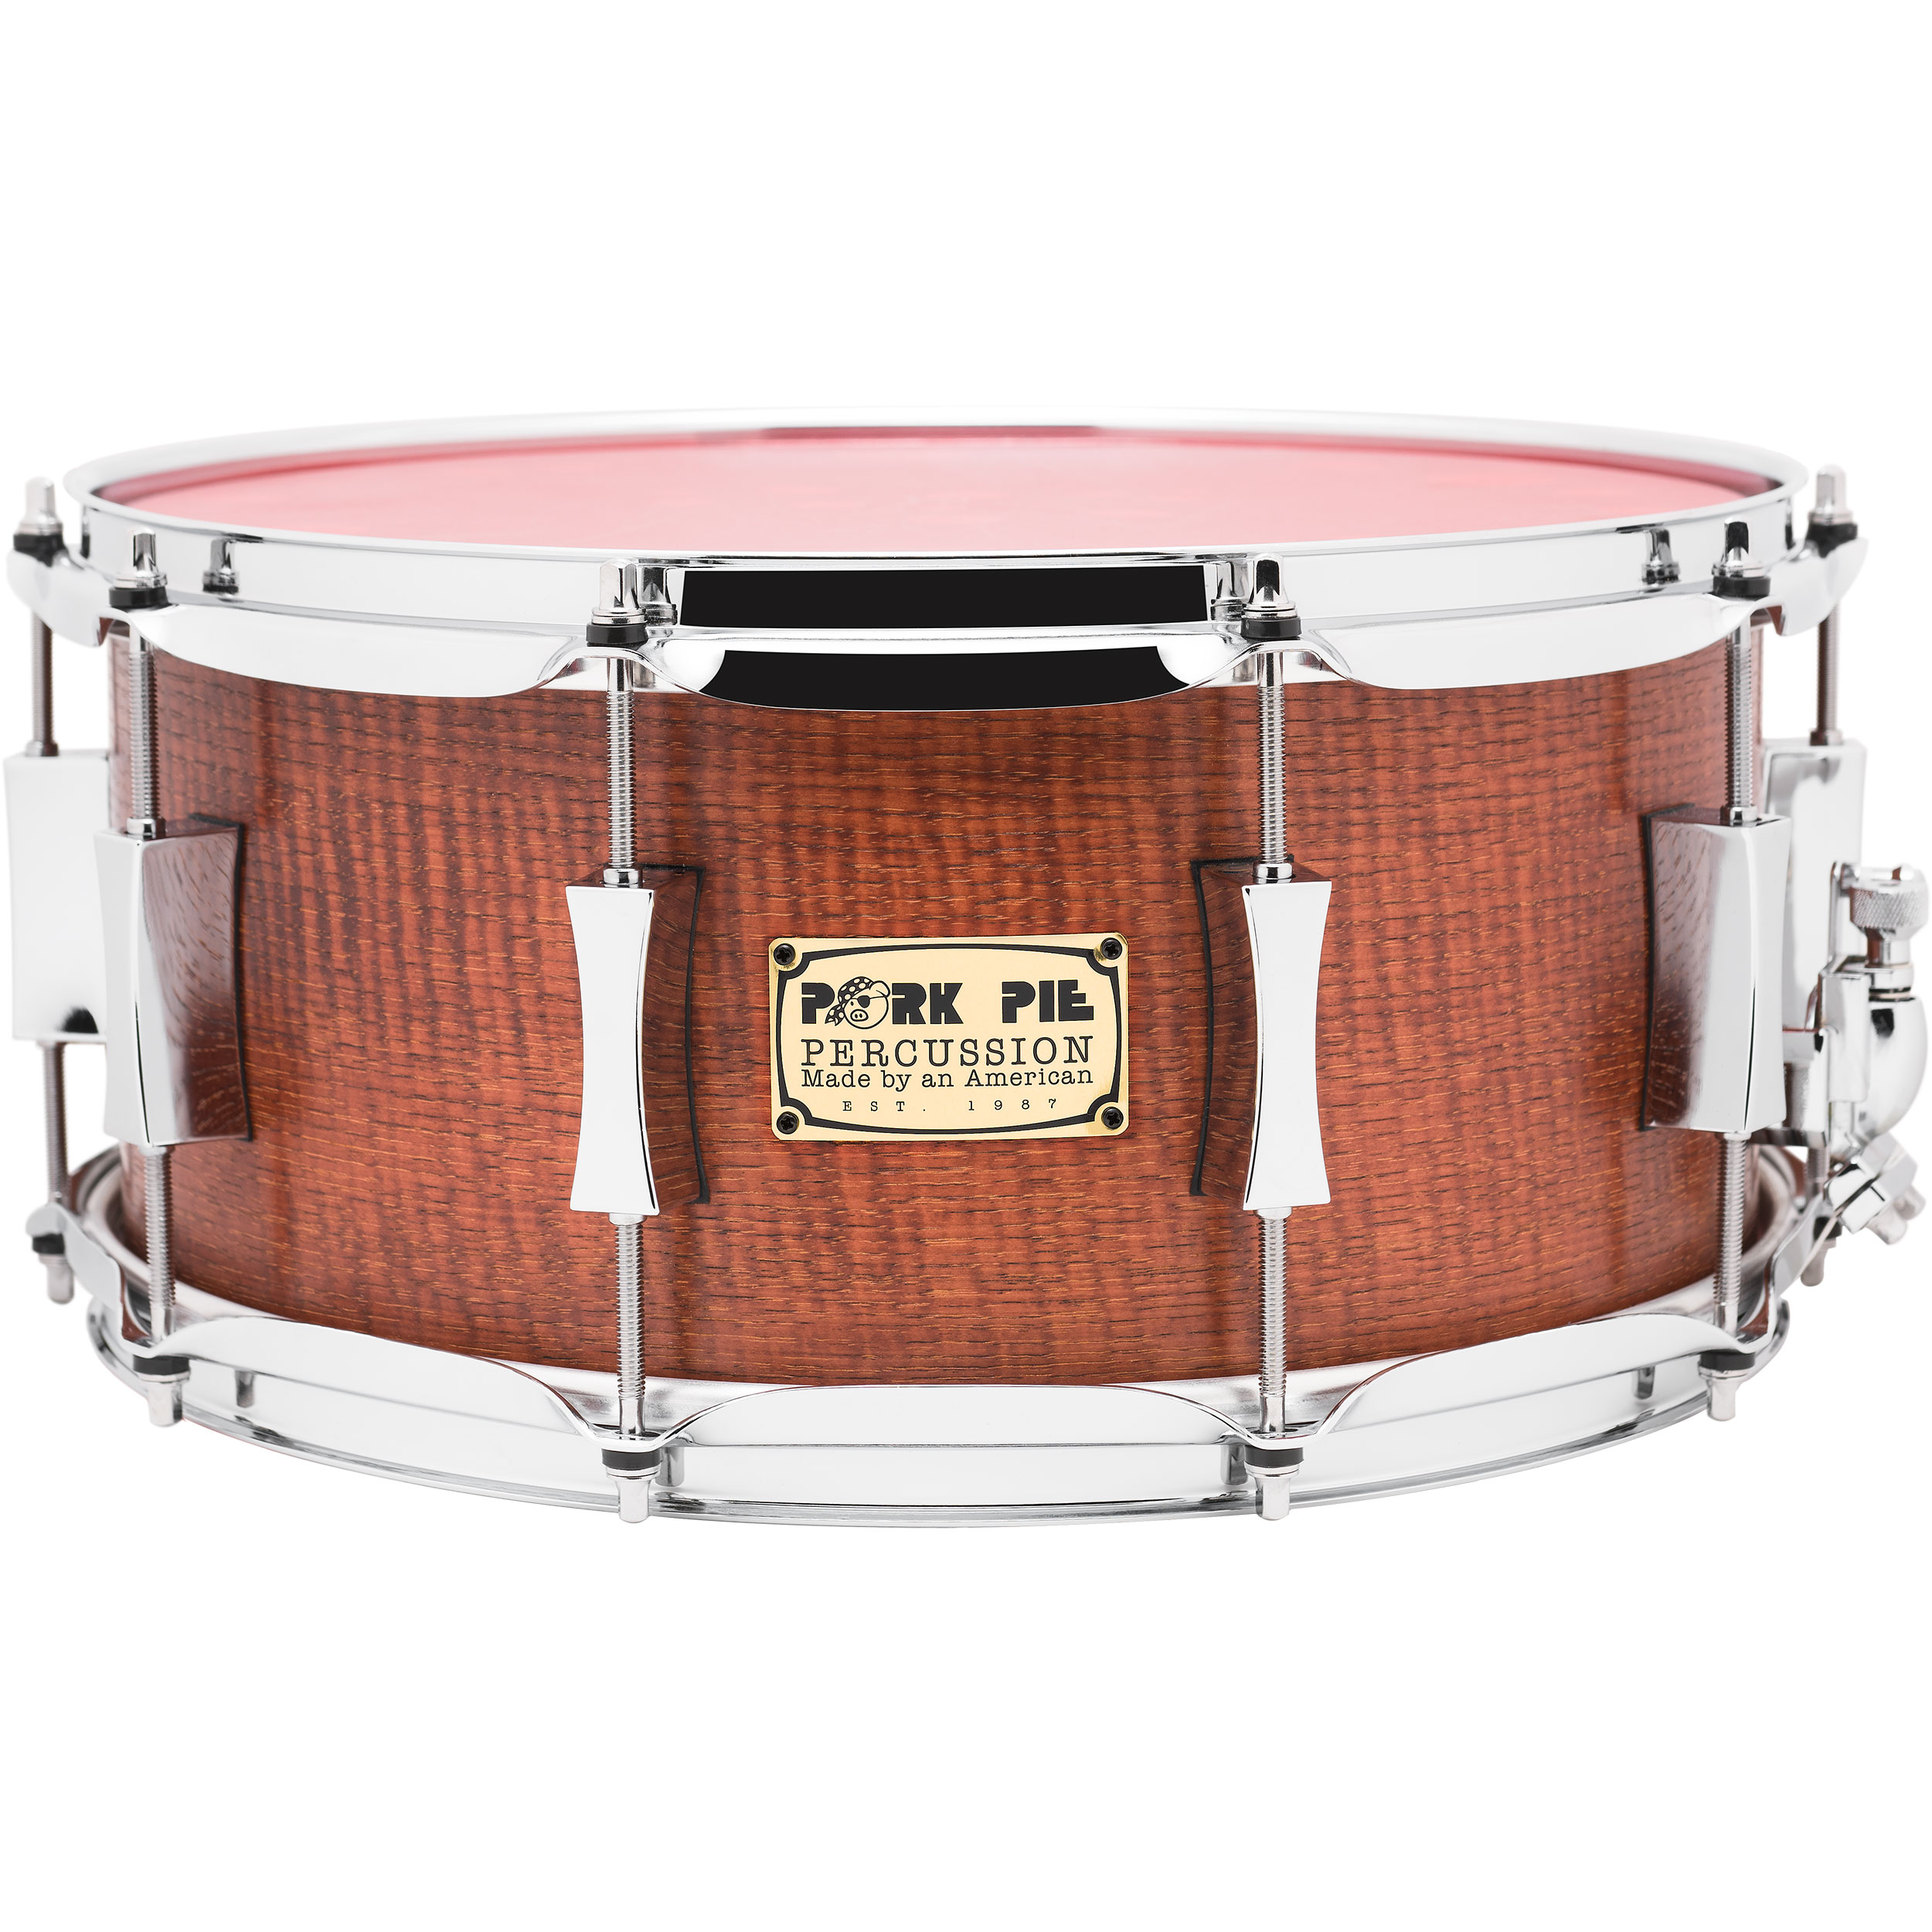 "Pork Pie Percussion 6.5"" x 14"" Hickory Snare Drum"